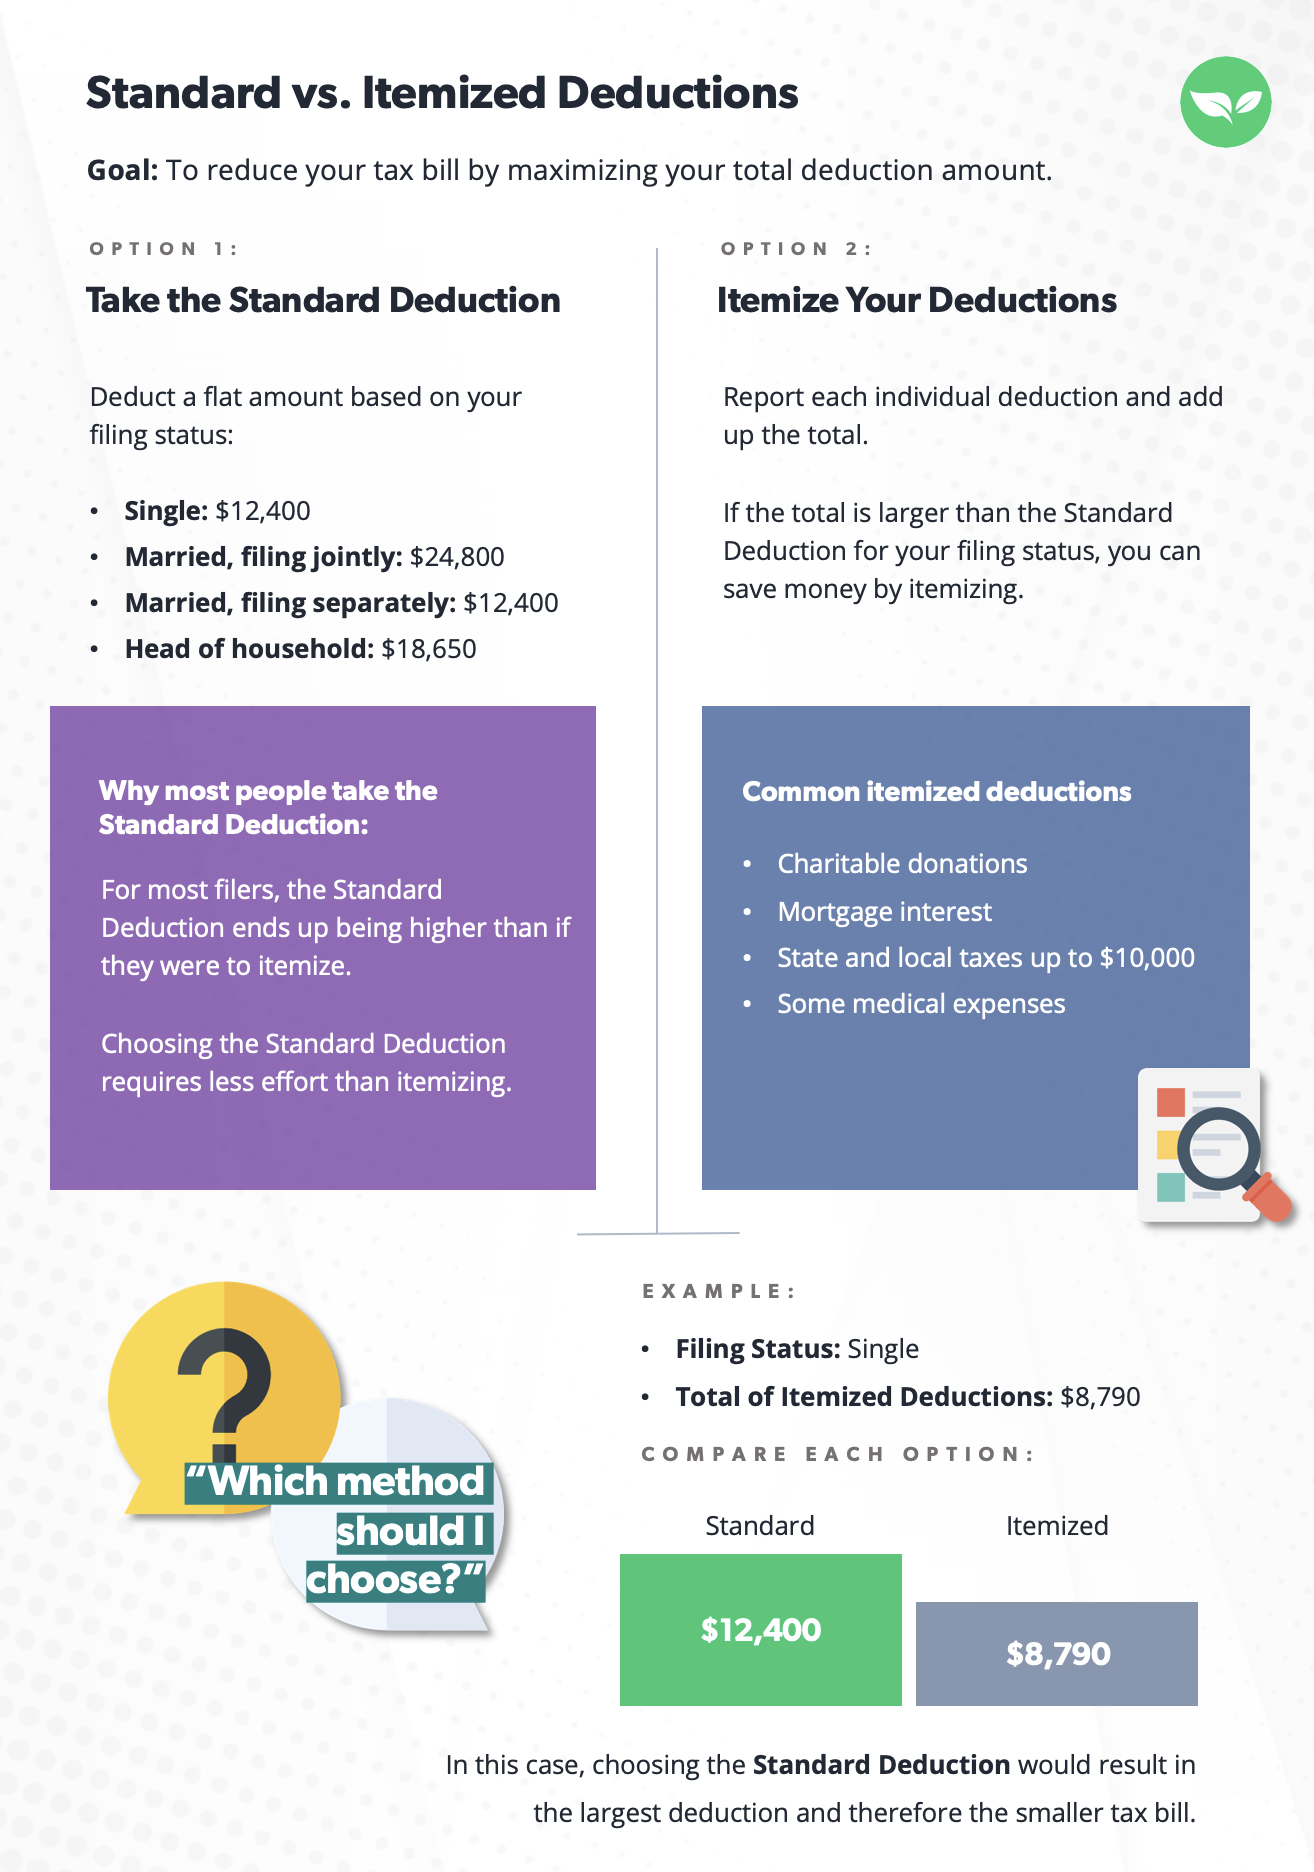 table comparing the difference between standard and itemized deductions